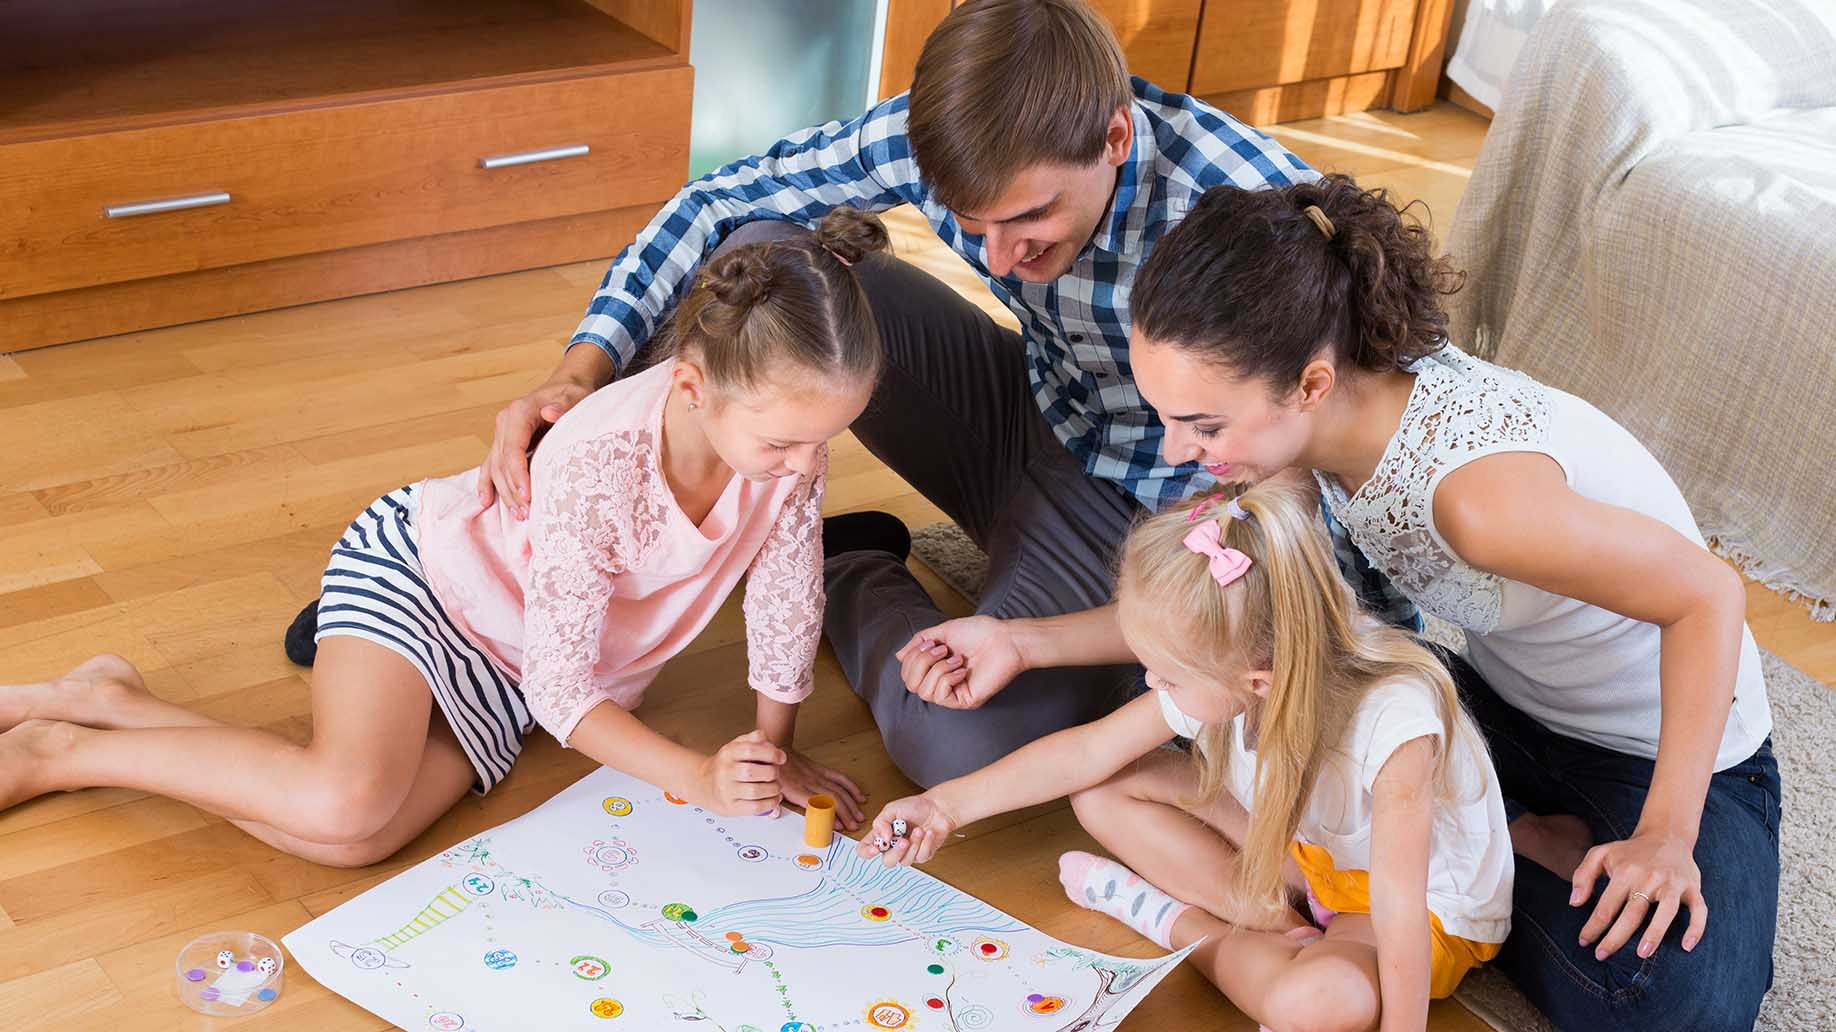 New 15 Family Game Night Ideas & Board Games Fun & Cheap Fun Board Games to Play with Family Of Awesome 49 Pics Fun Board Games to Play with Family